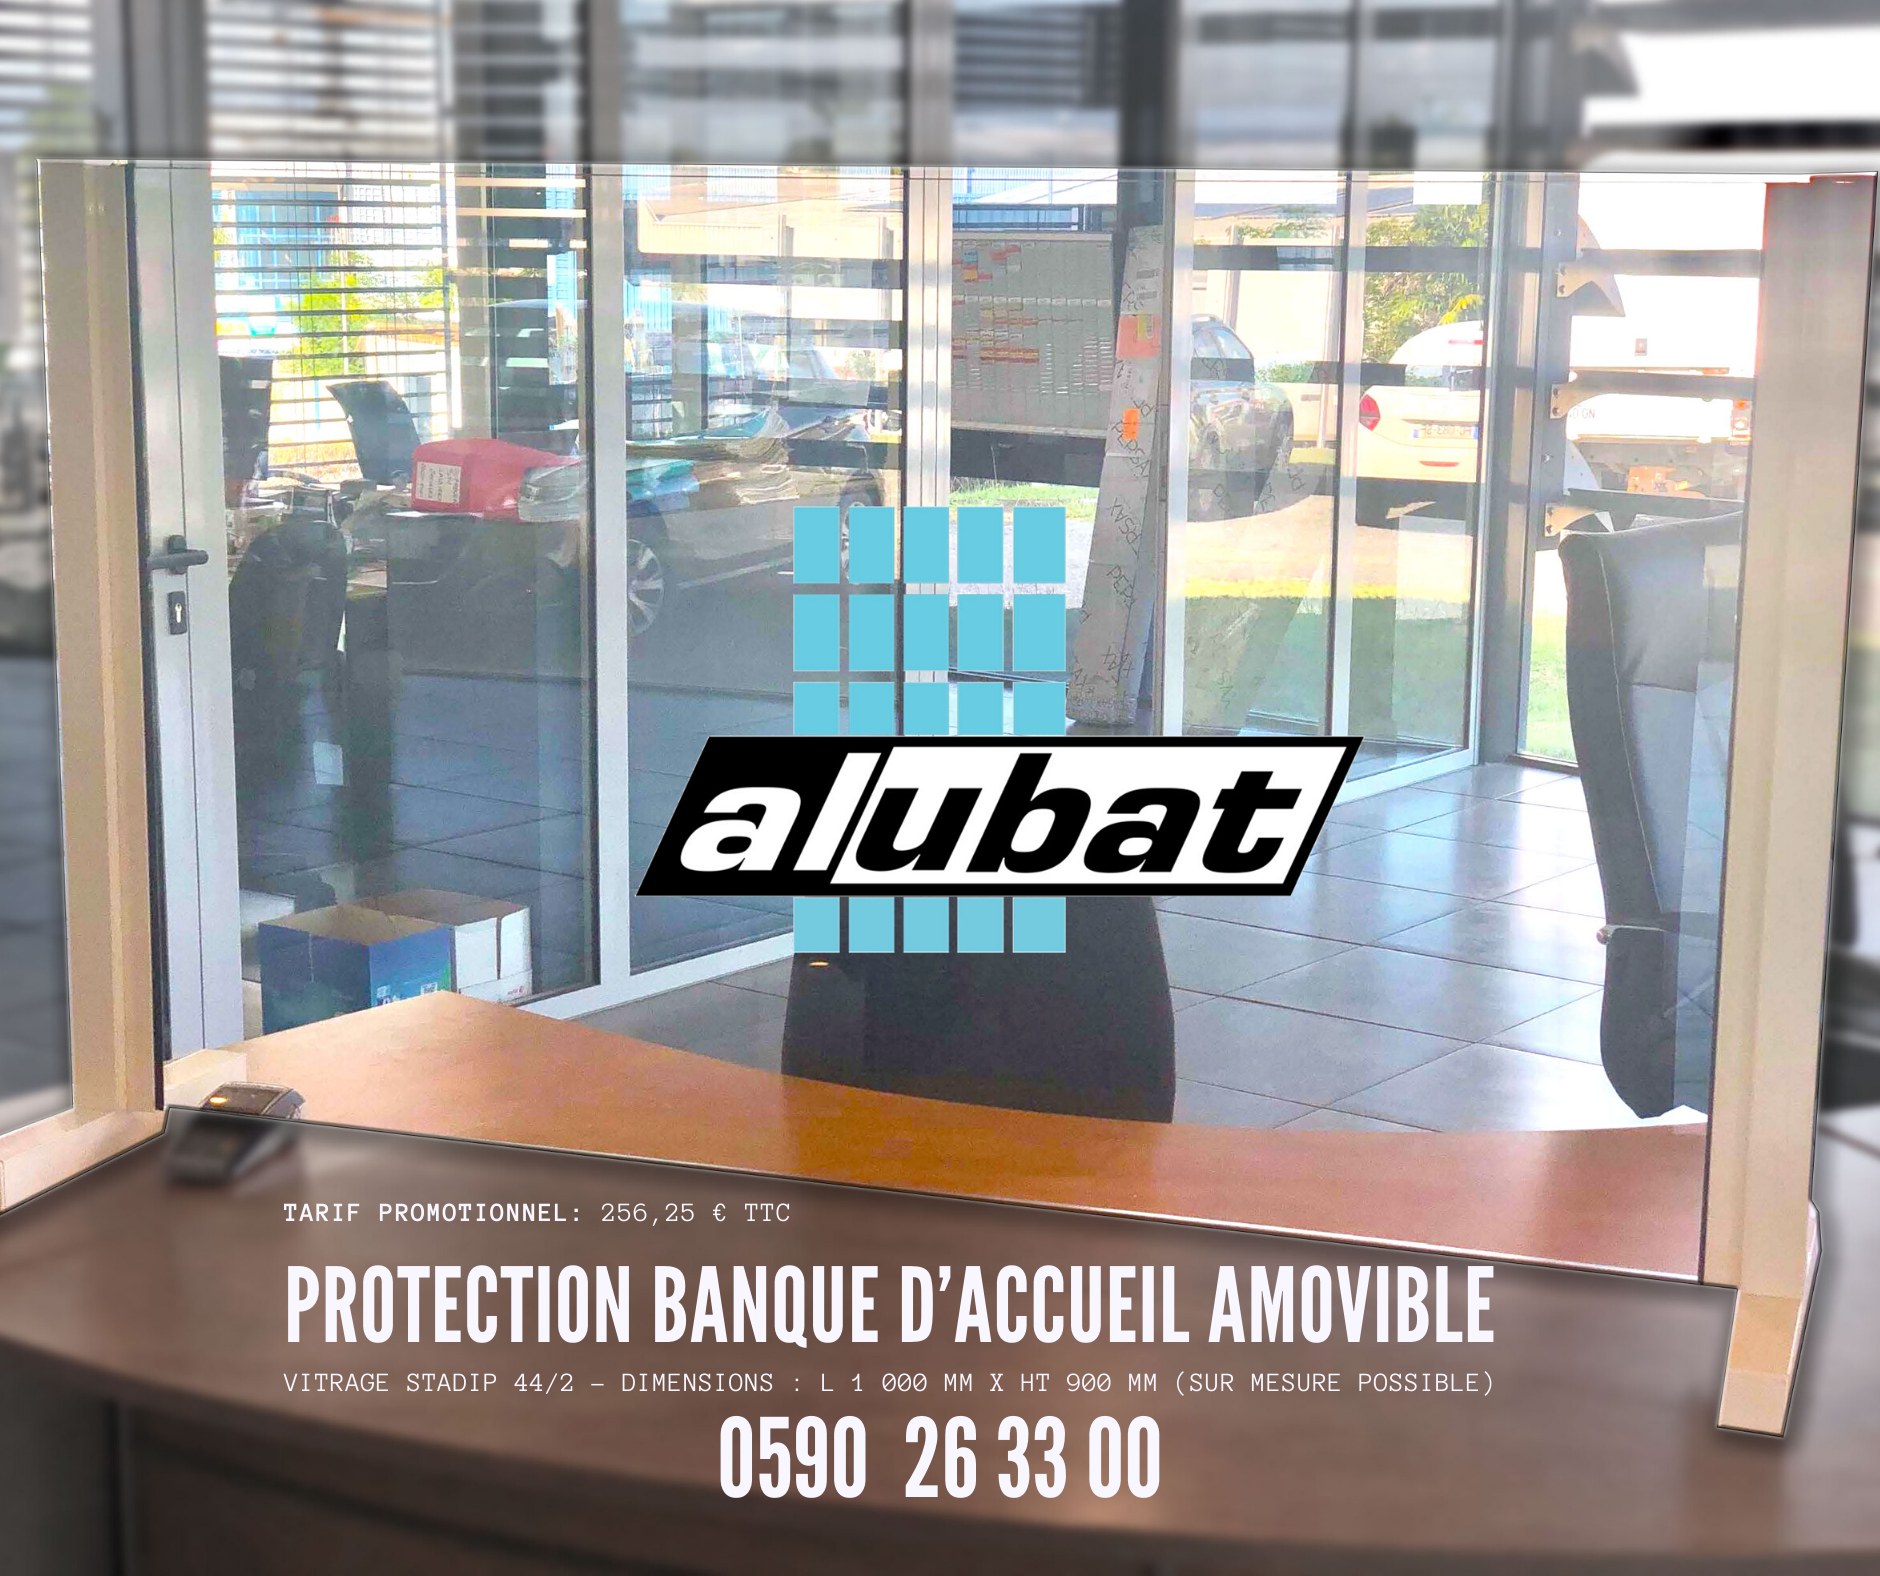 Protection Banque Accueil amovible